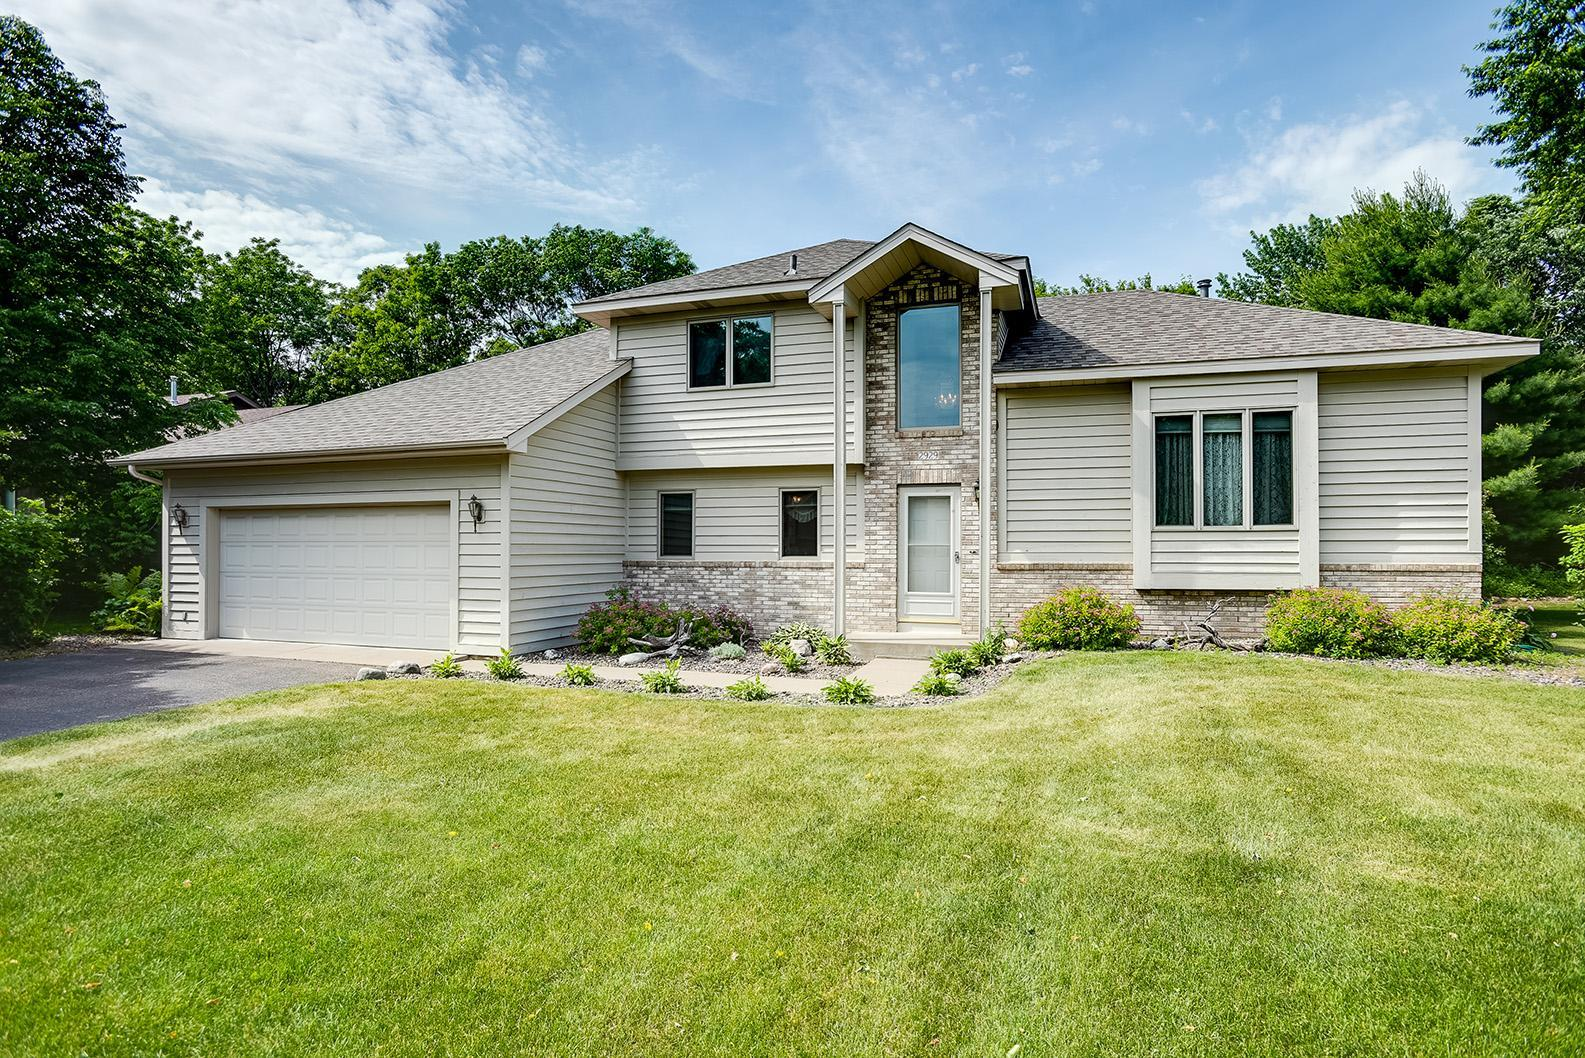 2929 Sherwood Property Photo - Mounds View, MN real estate listing